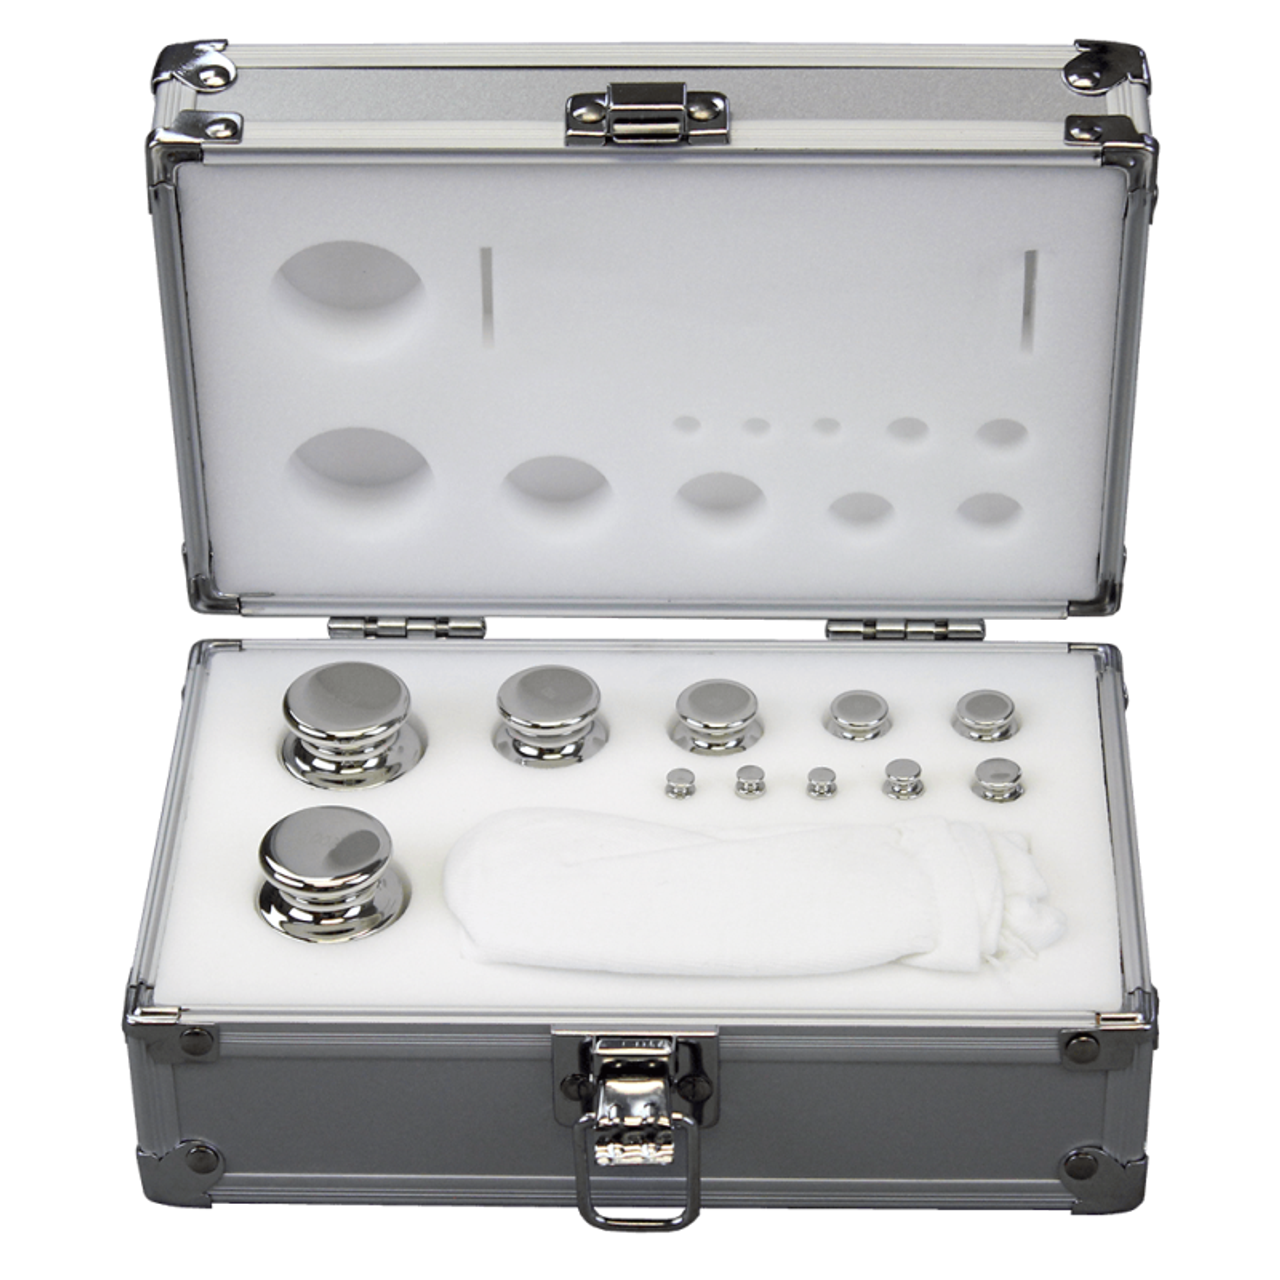 1g to 200g Ohaus Stainless Steel 11 Piece ASTM Class 1 NVLAP Certified Calibration Weight Set